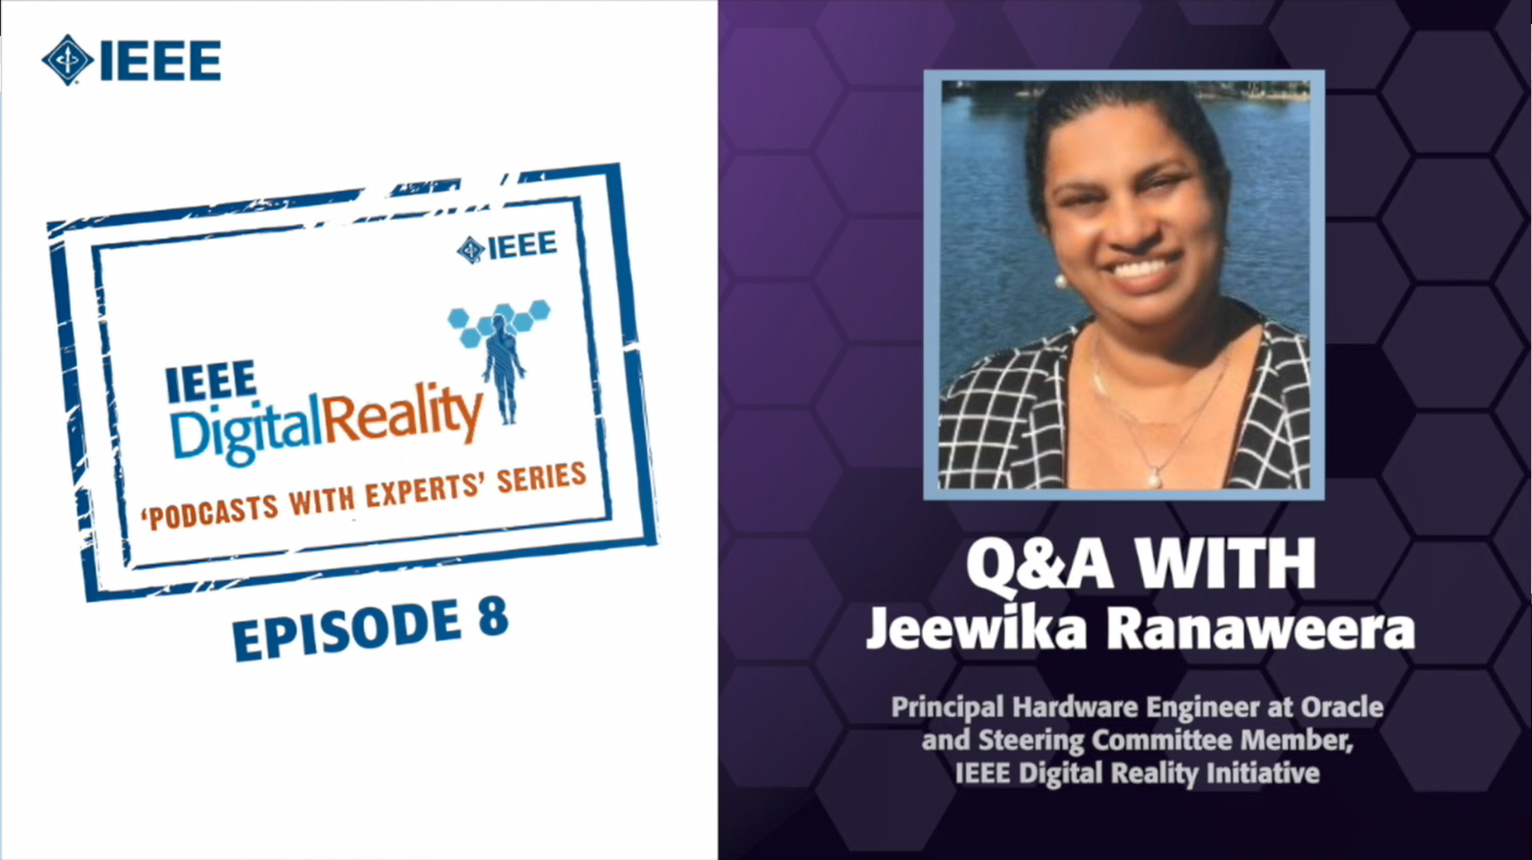 Q&A with Jeewika Ranaweera: IEEE Digital Reality Podcast, Episode 8